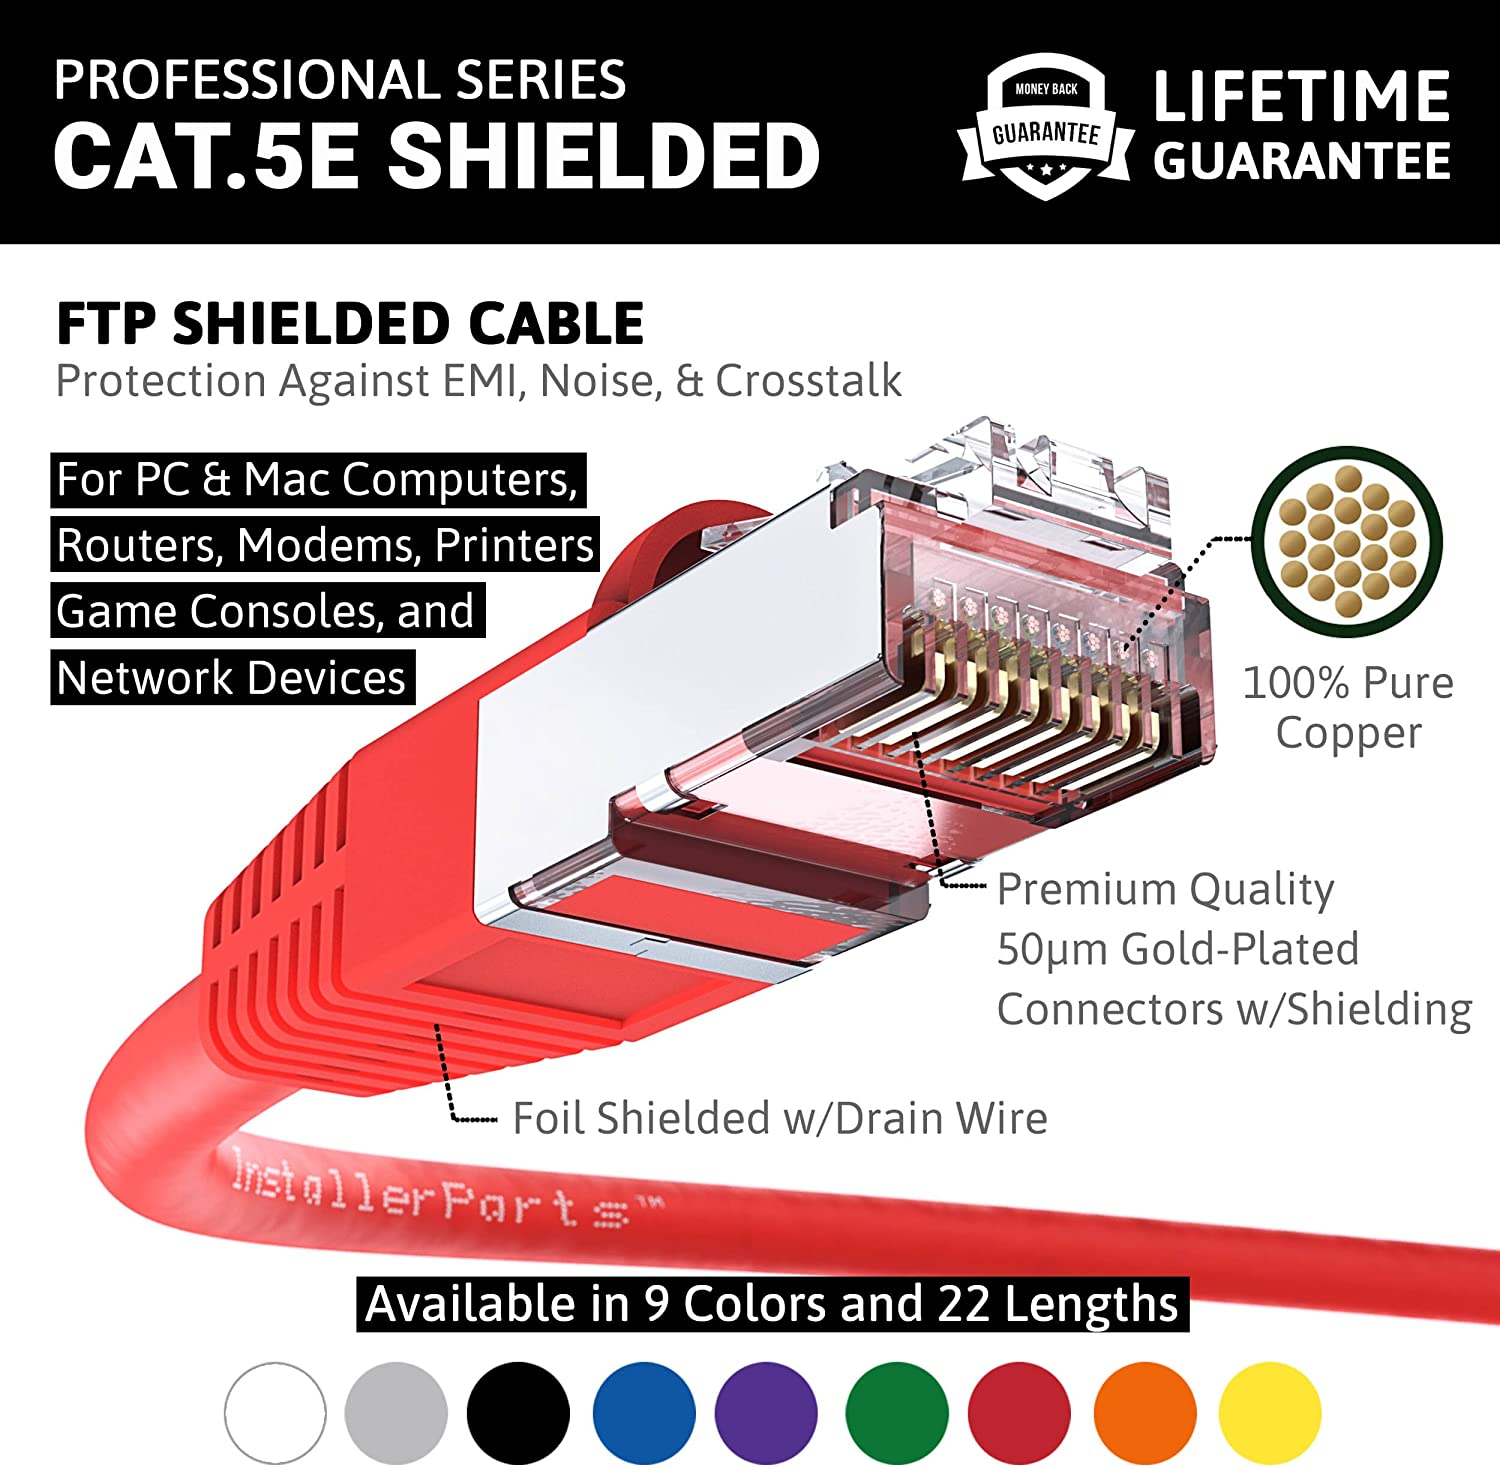 Red 350MHZ Professional Series InstallerParts 1Gigabit//Sec Network//Internet Cable 10 Pack FTP Ethernet Cable CAT5E Cable Shielded Booted 6 FT